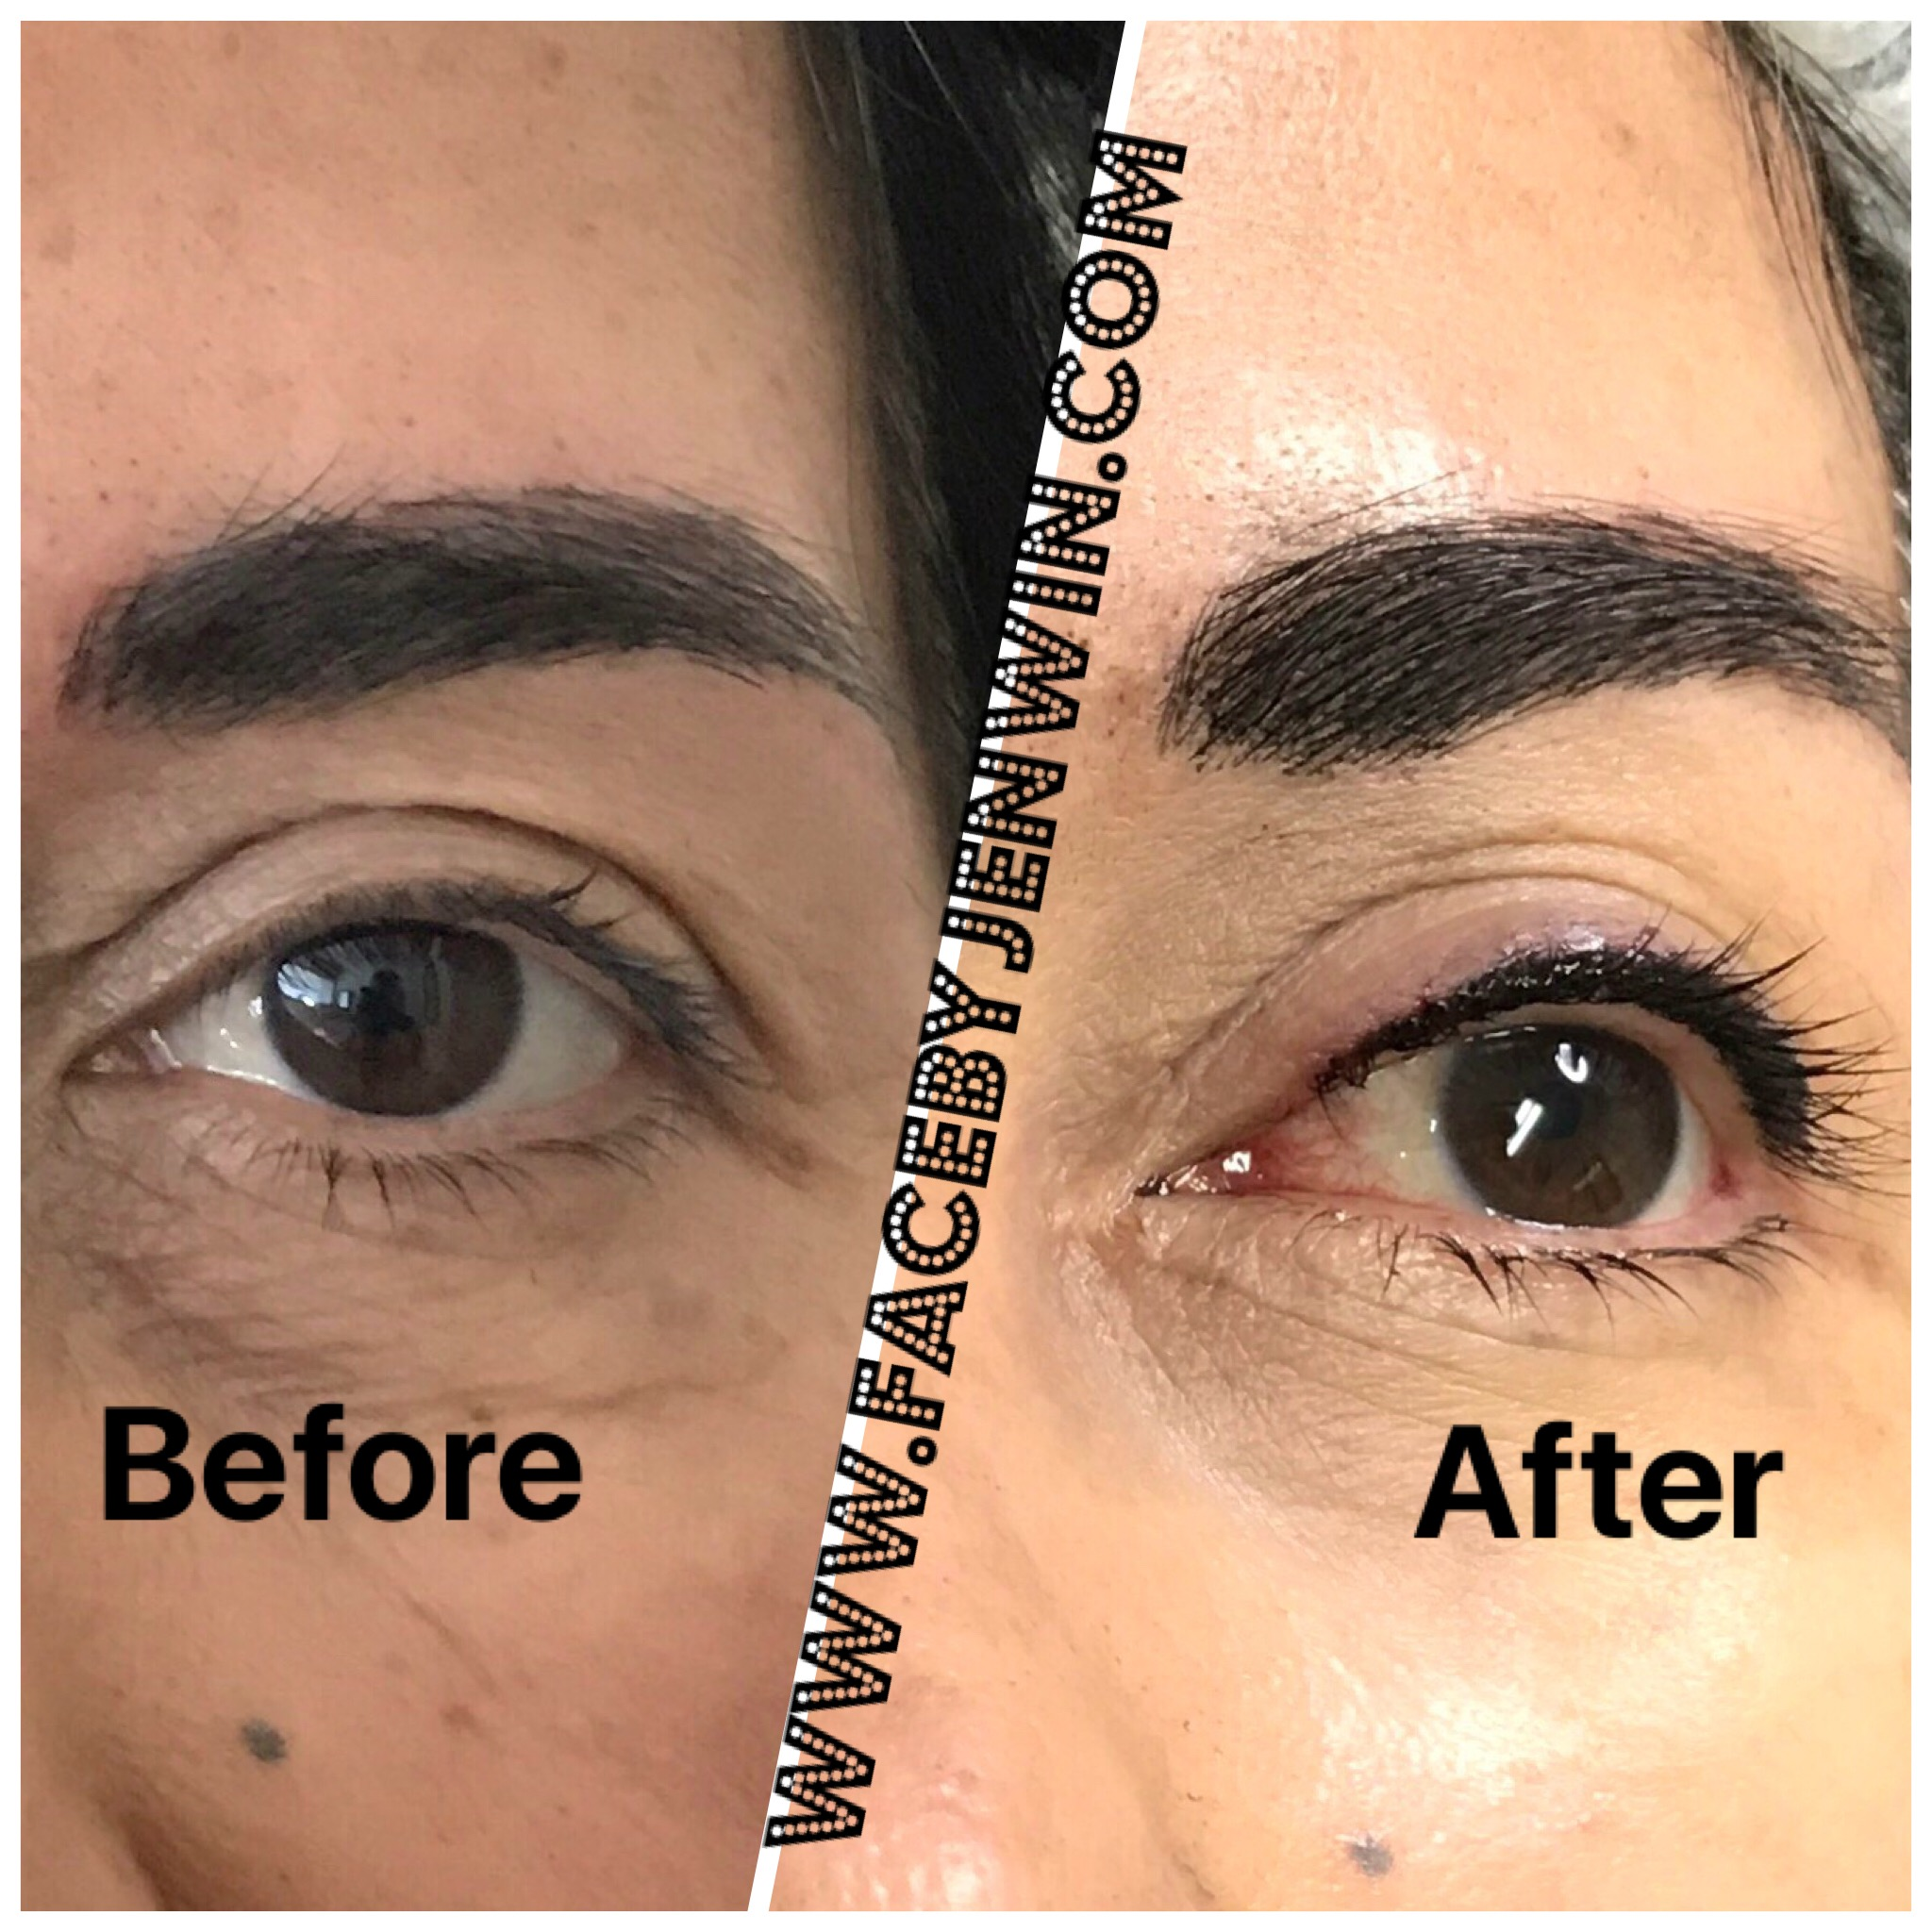 Before & After Photos | Microblading & Permanent Makeup